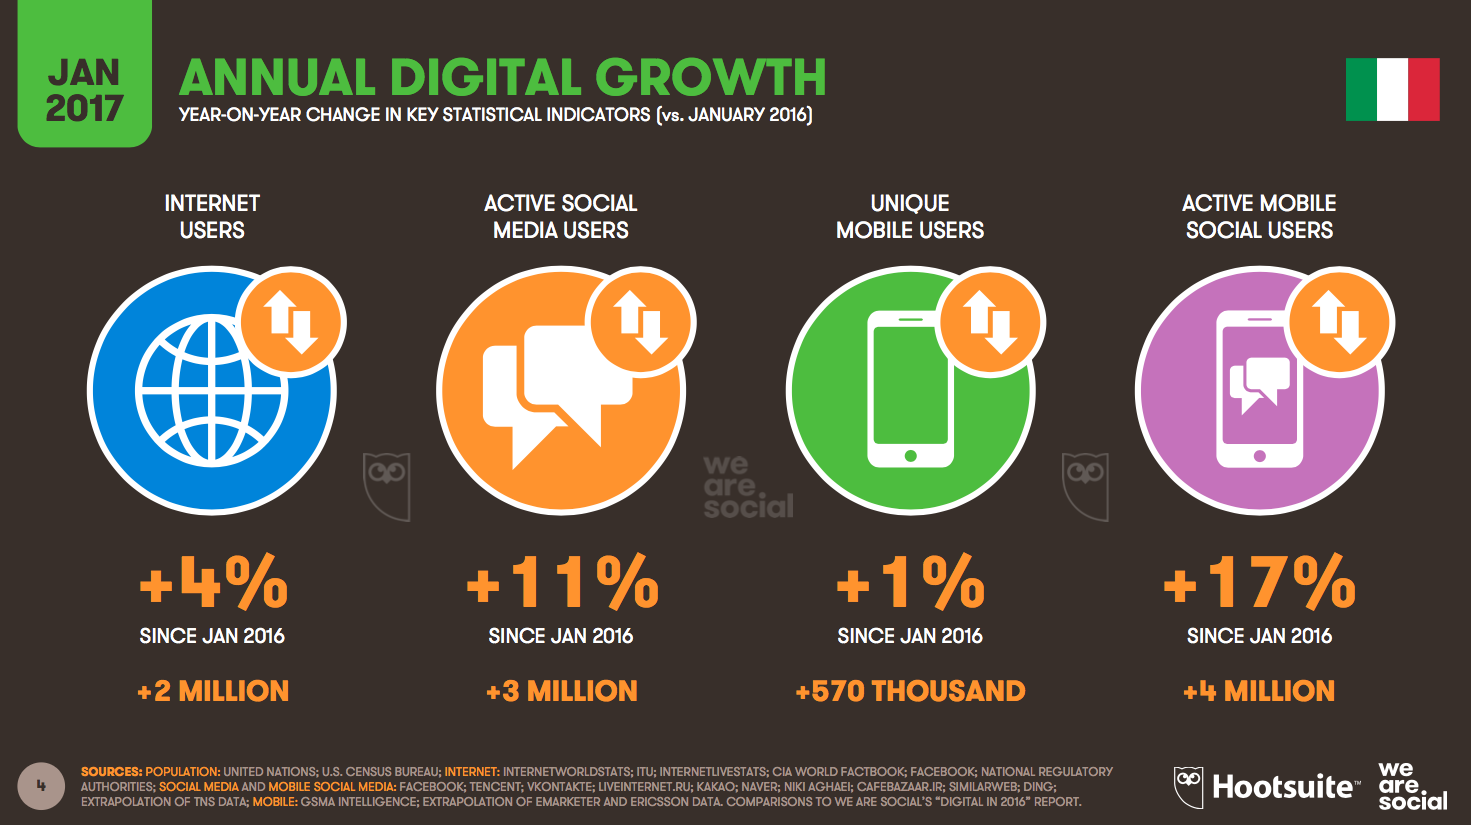 Annual Digital Growth